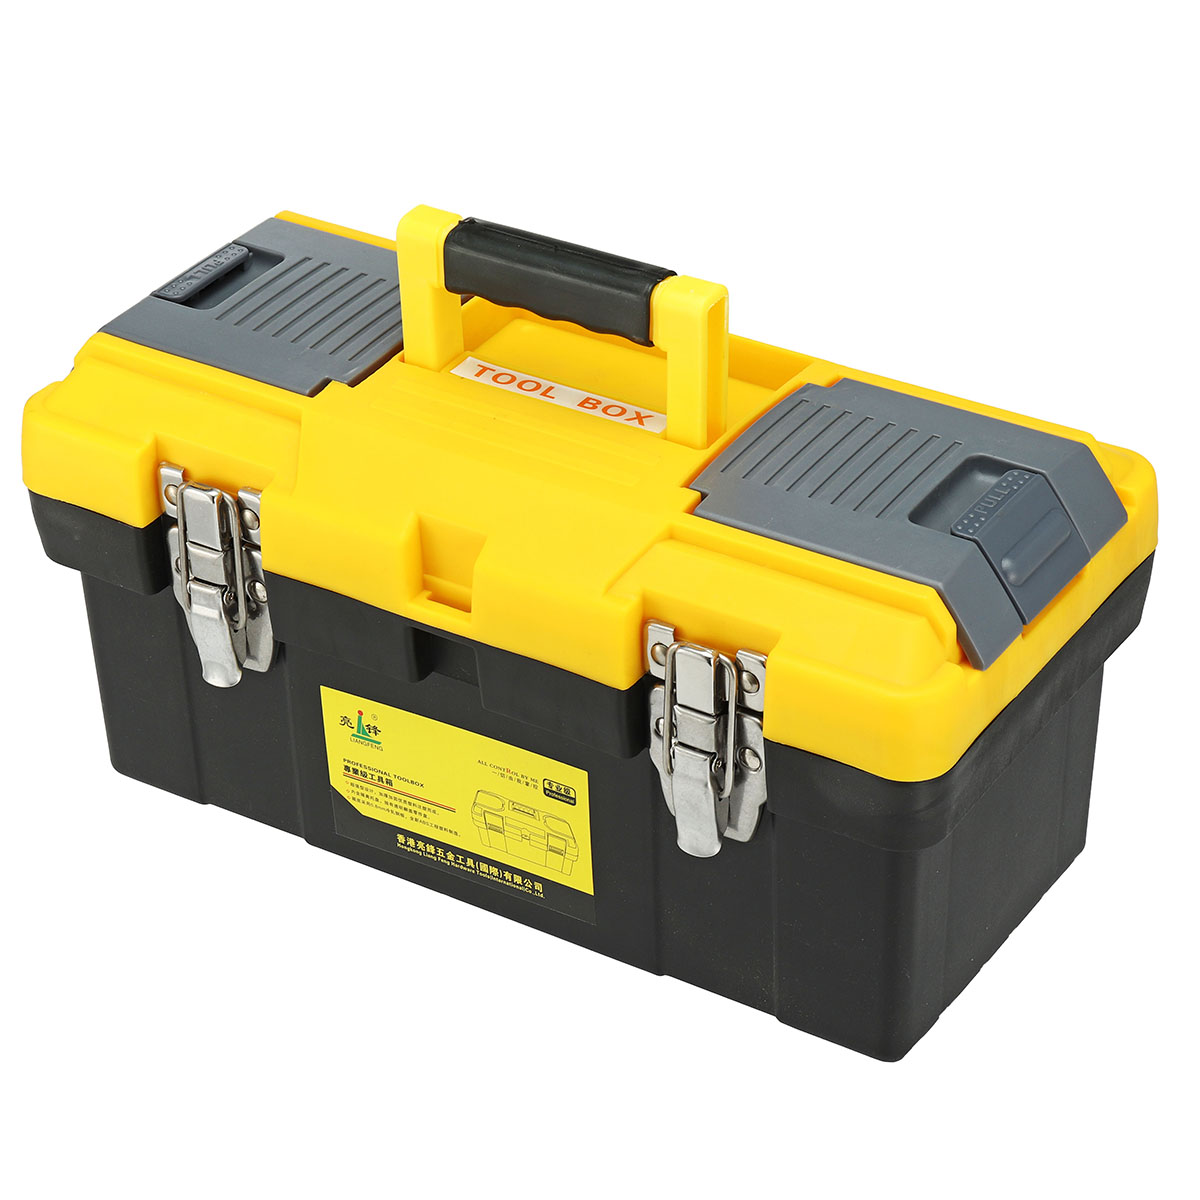 Portable Plastic Tools Box Chest Storage Organizer Handle Tray Compartment Kits Toolbox Tool Case Holder Container 14/17/19 Inch